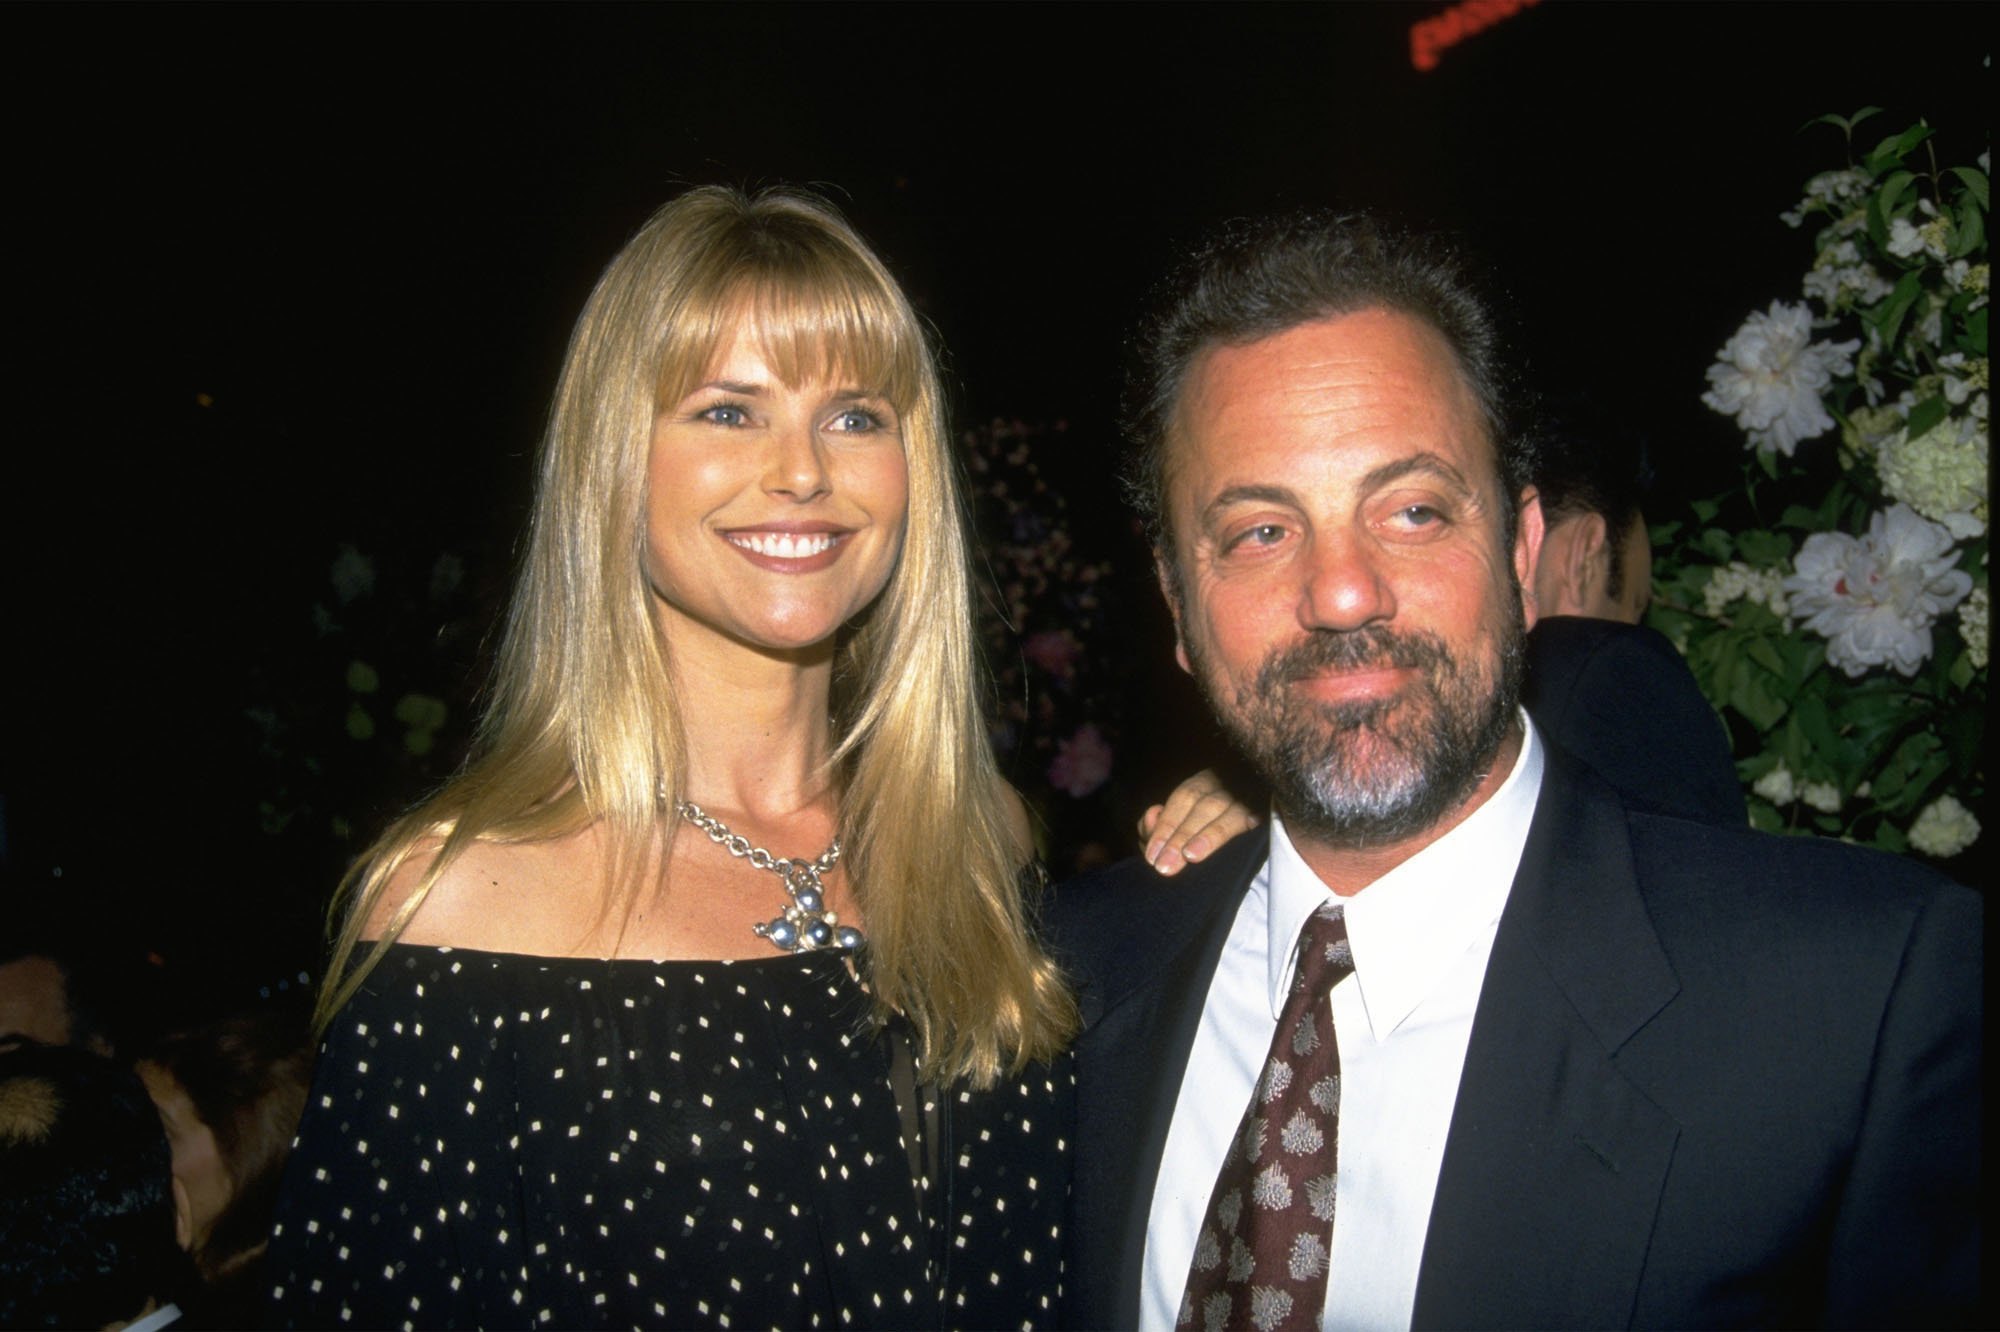 Christie Brinkley and Billy Joel. | Source: Getty Images